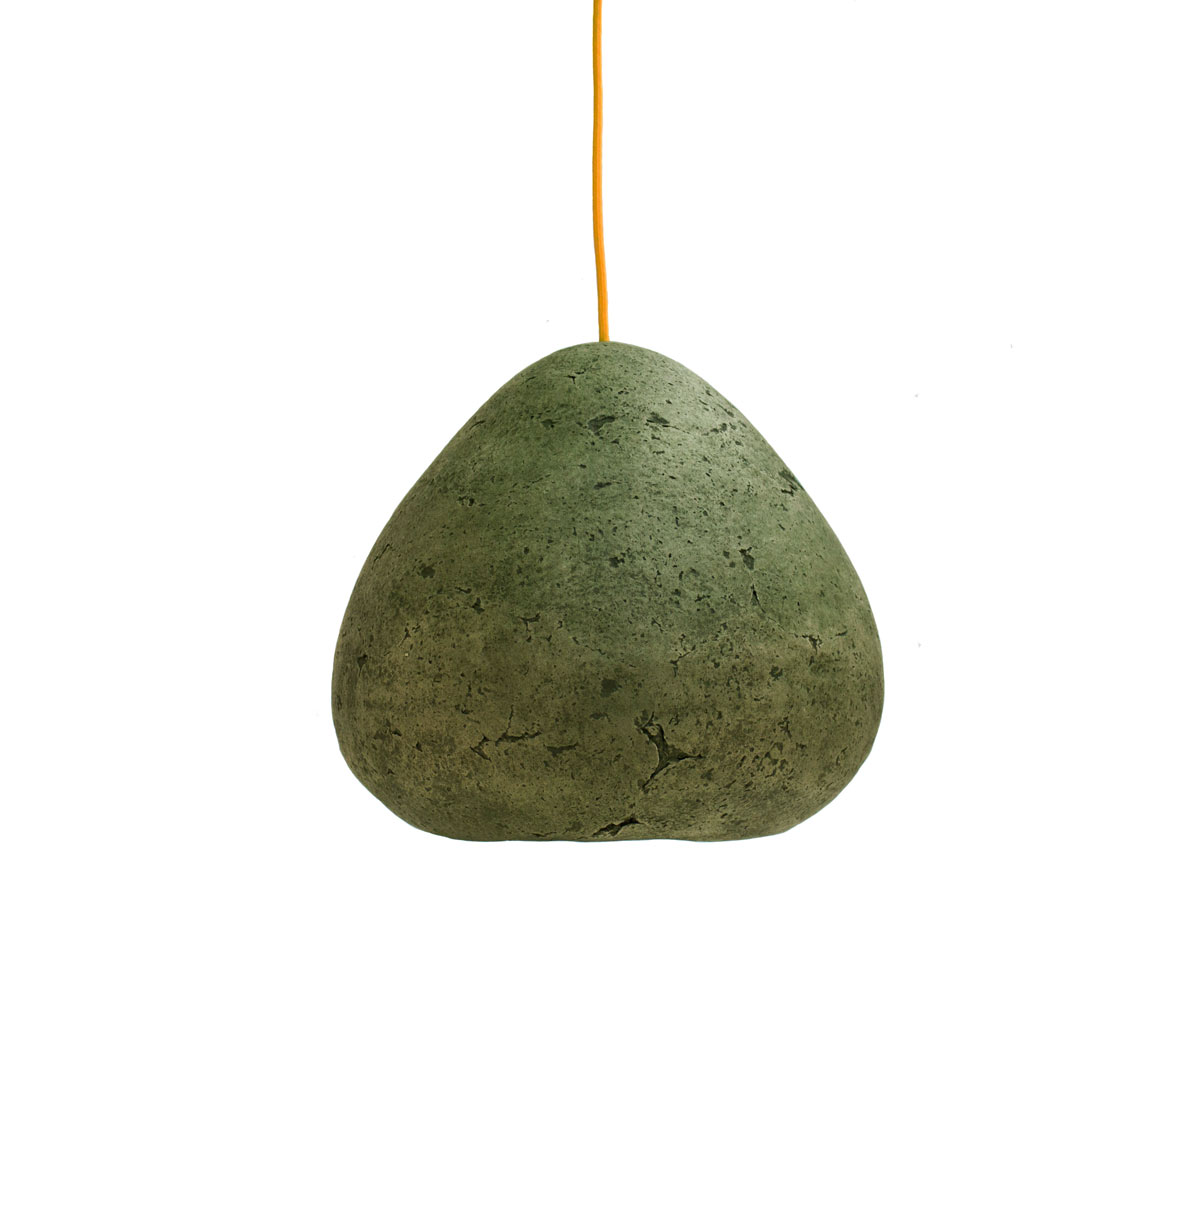 morphe_ii_vagone_green_paper_mache_lamp_crea_re_studio_1